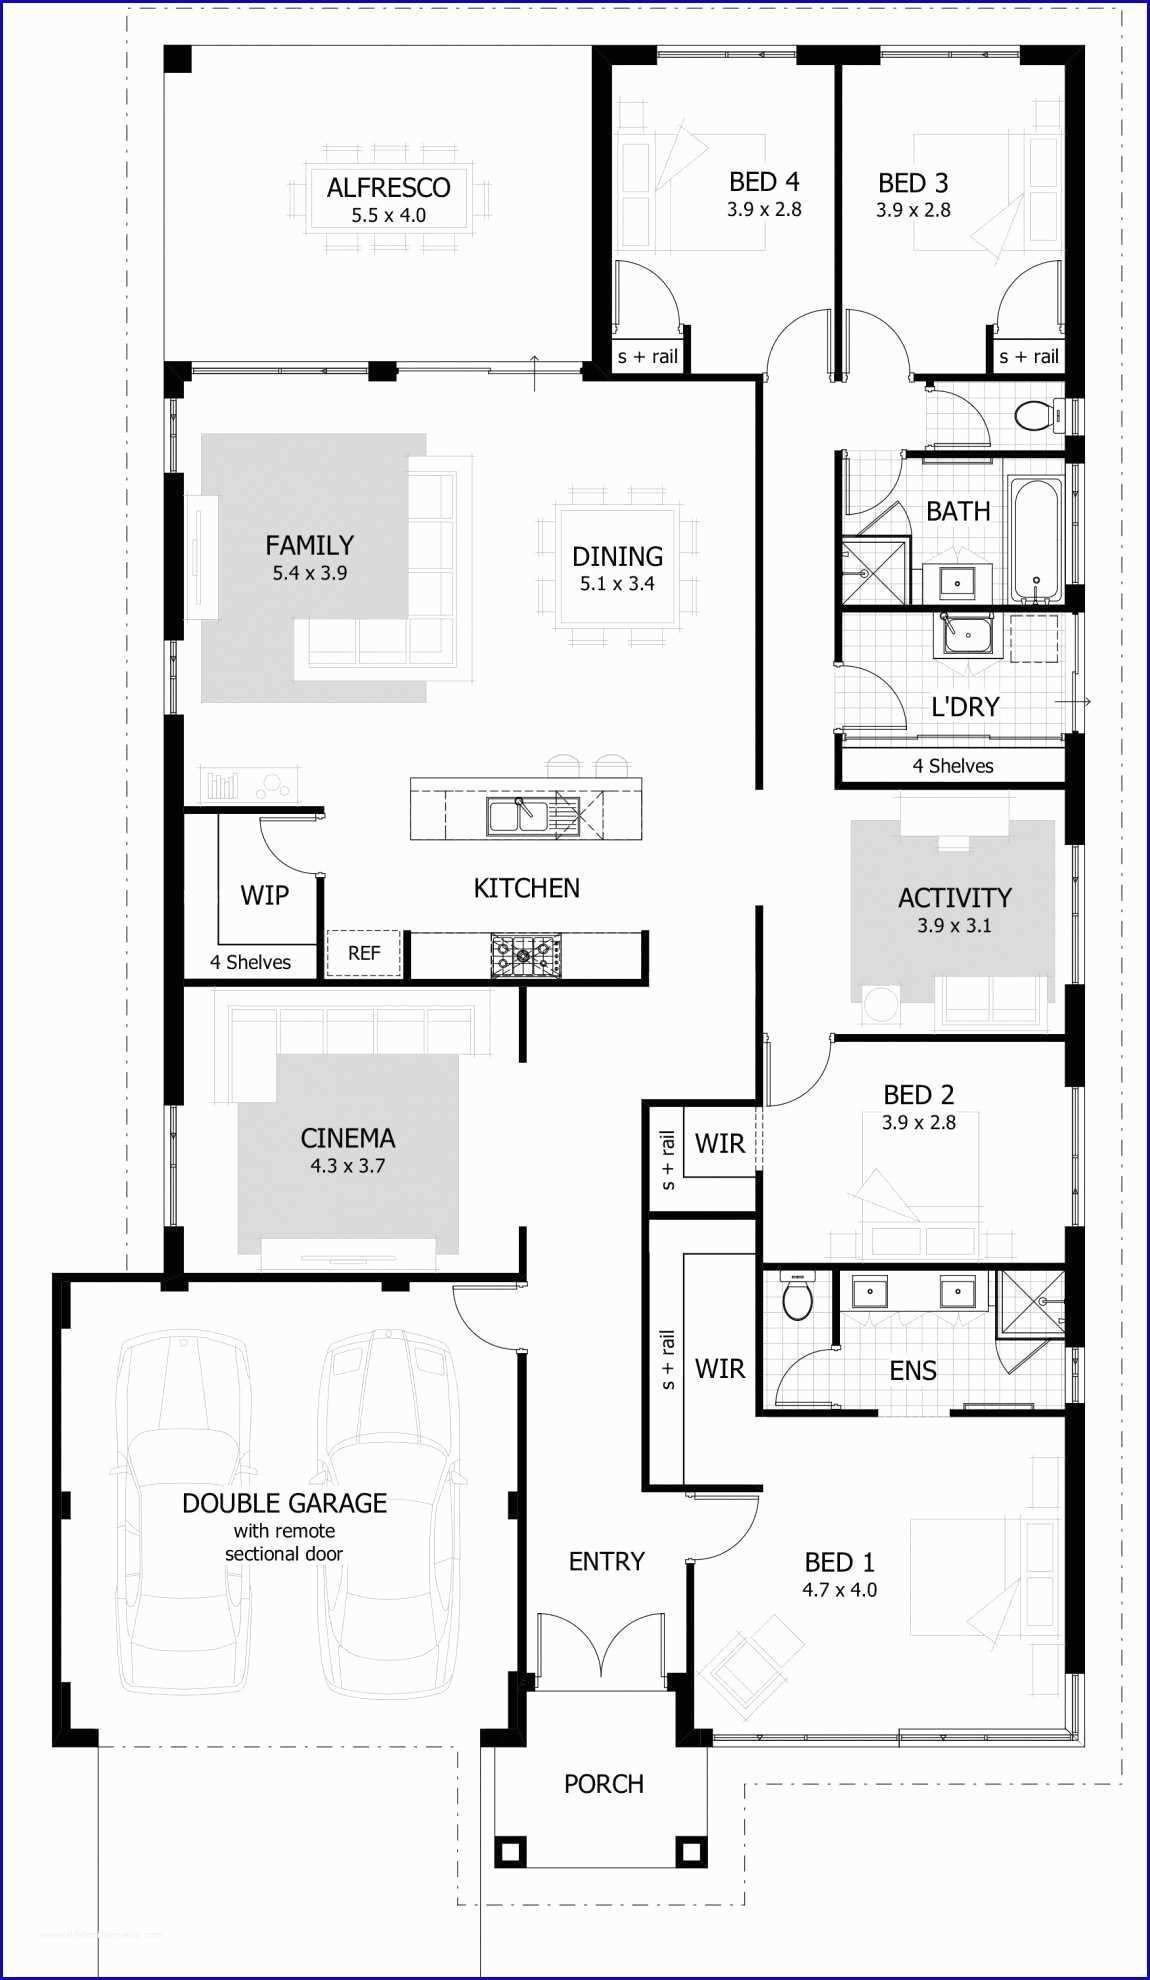 39 Unbelievable Rustic Home Plans 4 Bedroom That Are So Inspiring Castle House Plans Four Bedroom House Plans 4 Bedroom House Plans